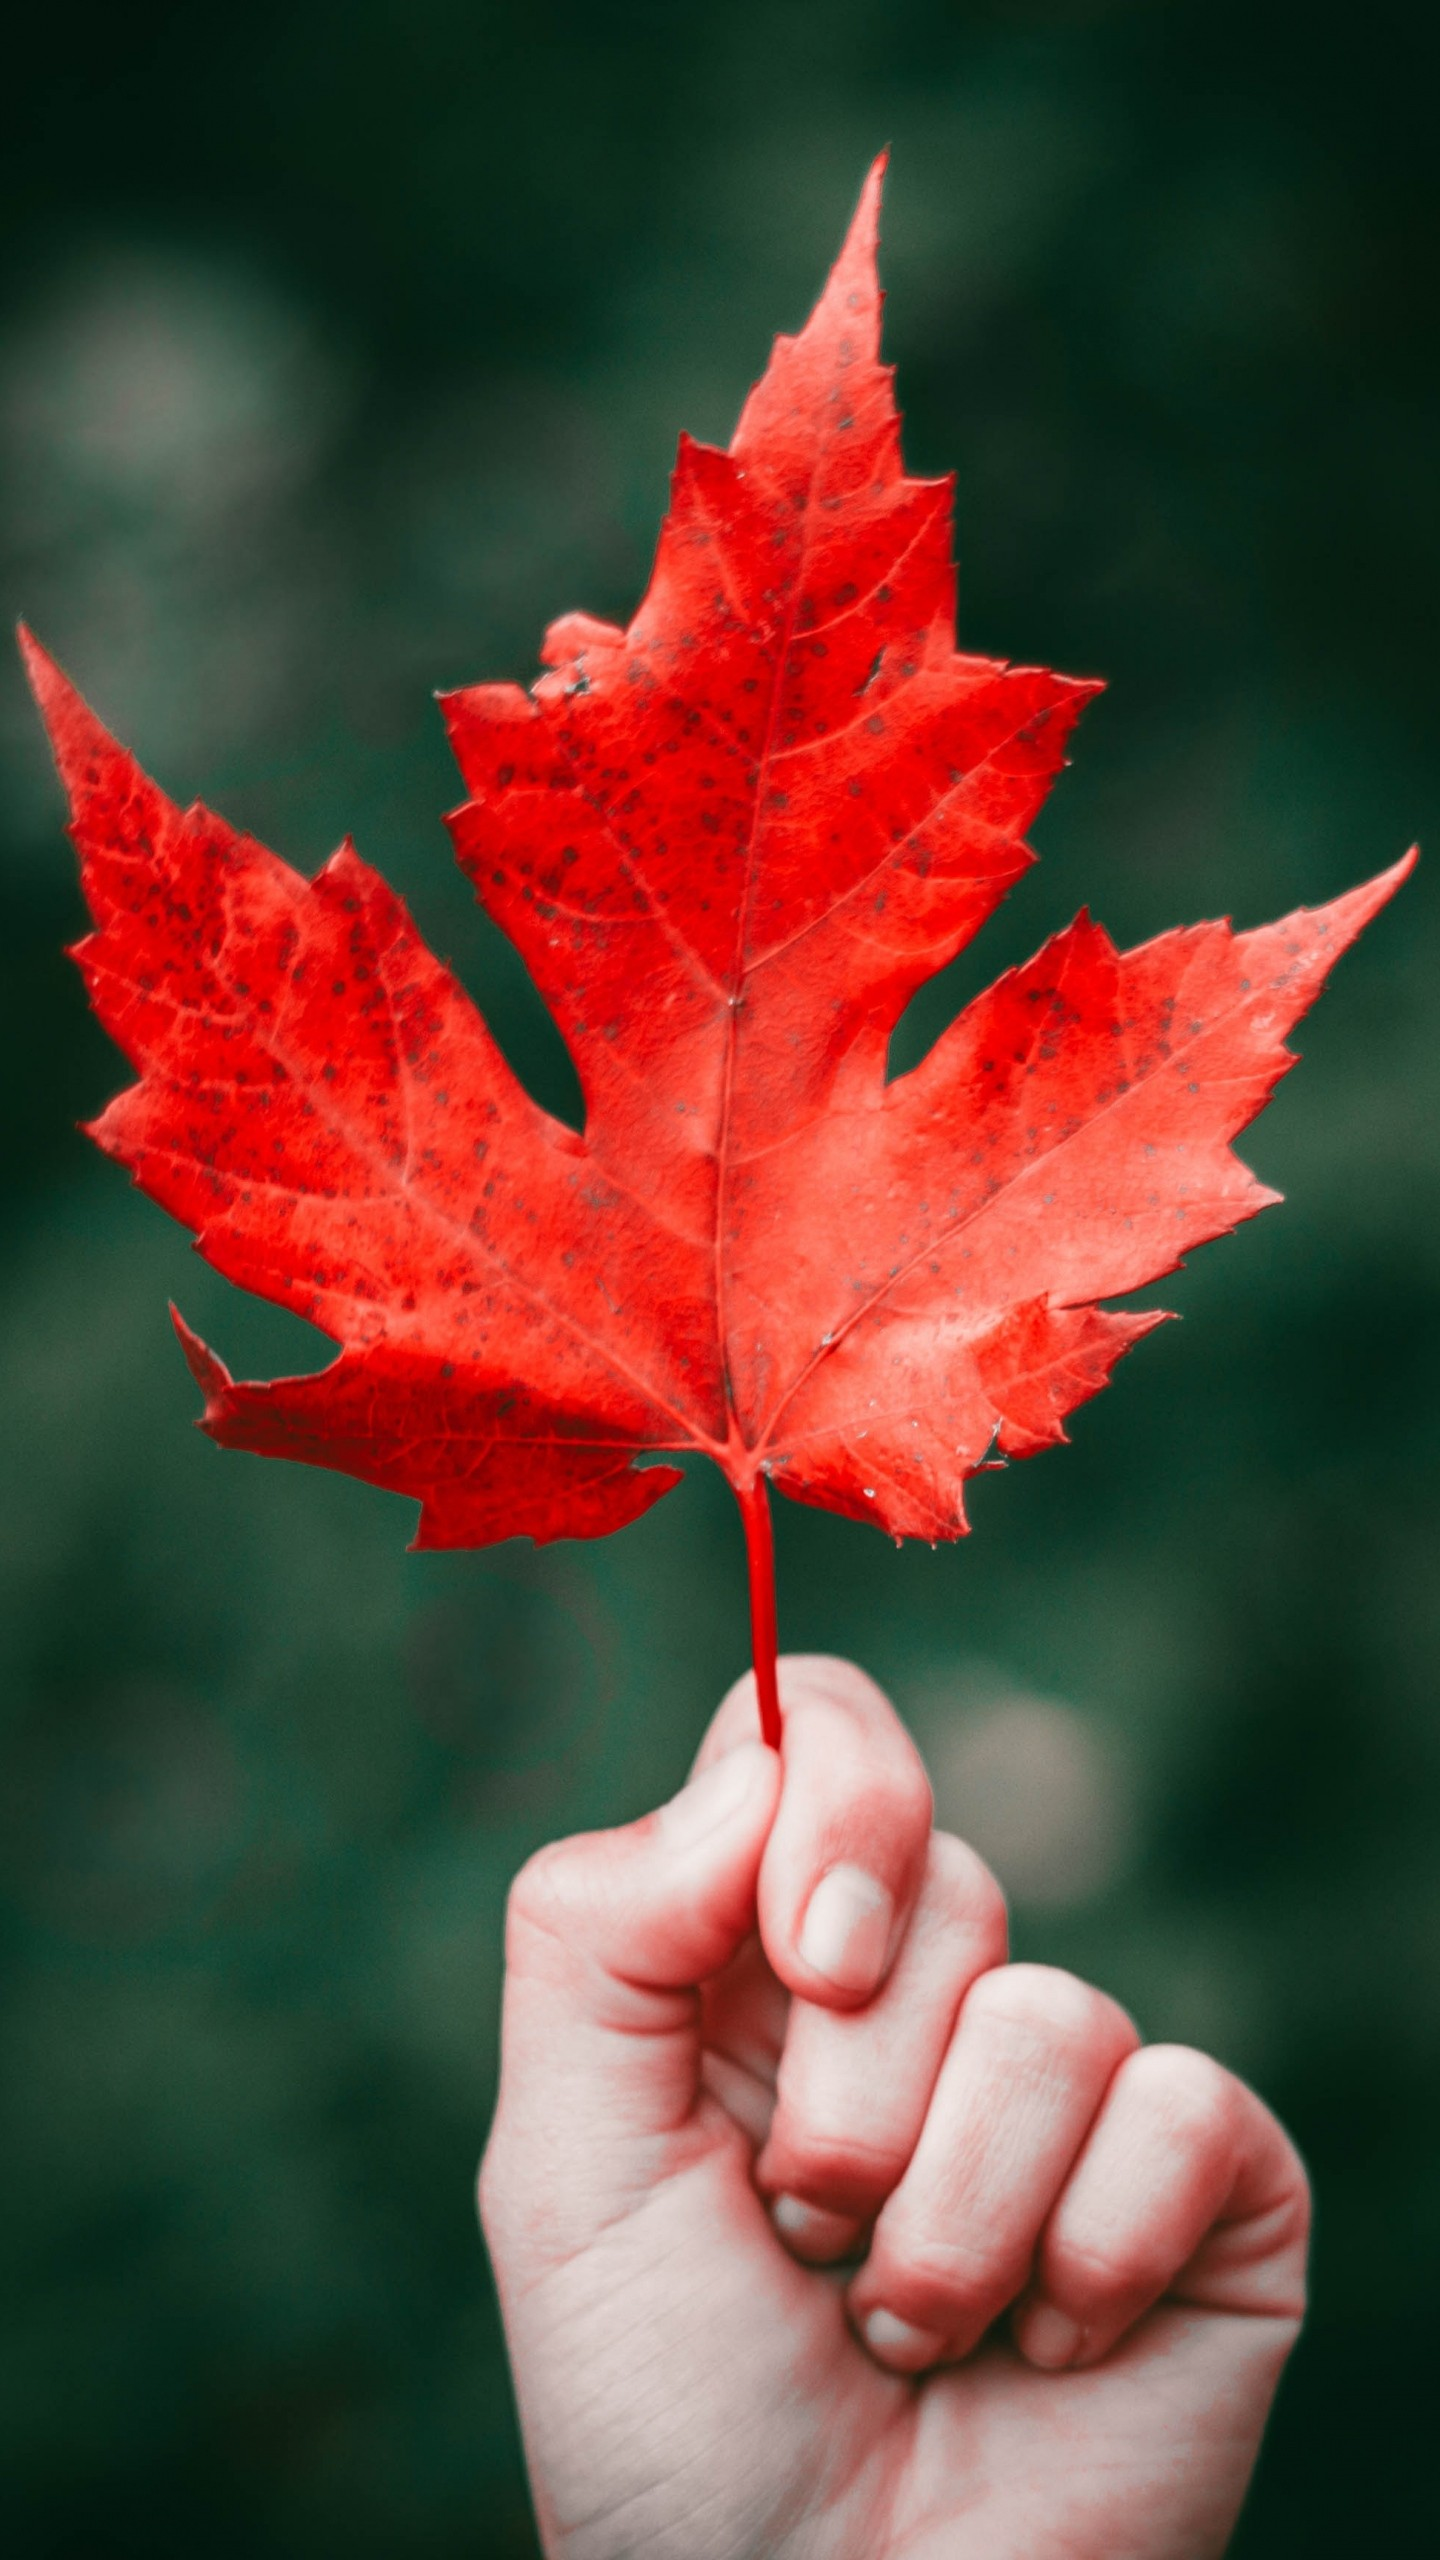 Islamic 3d Wallpapers Download Maple Leaf Autumn Hand Wallpaper 1440x2560